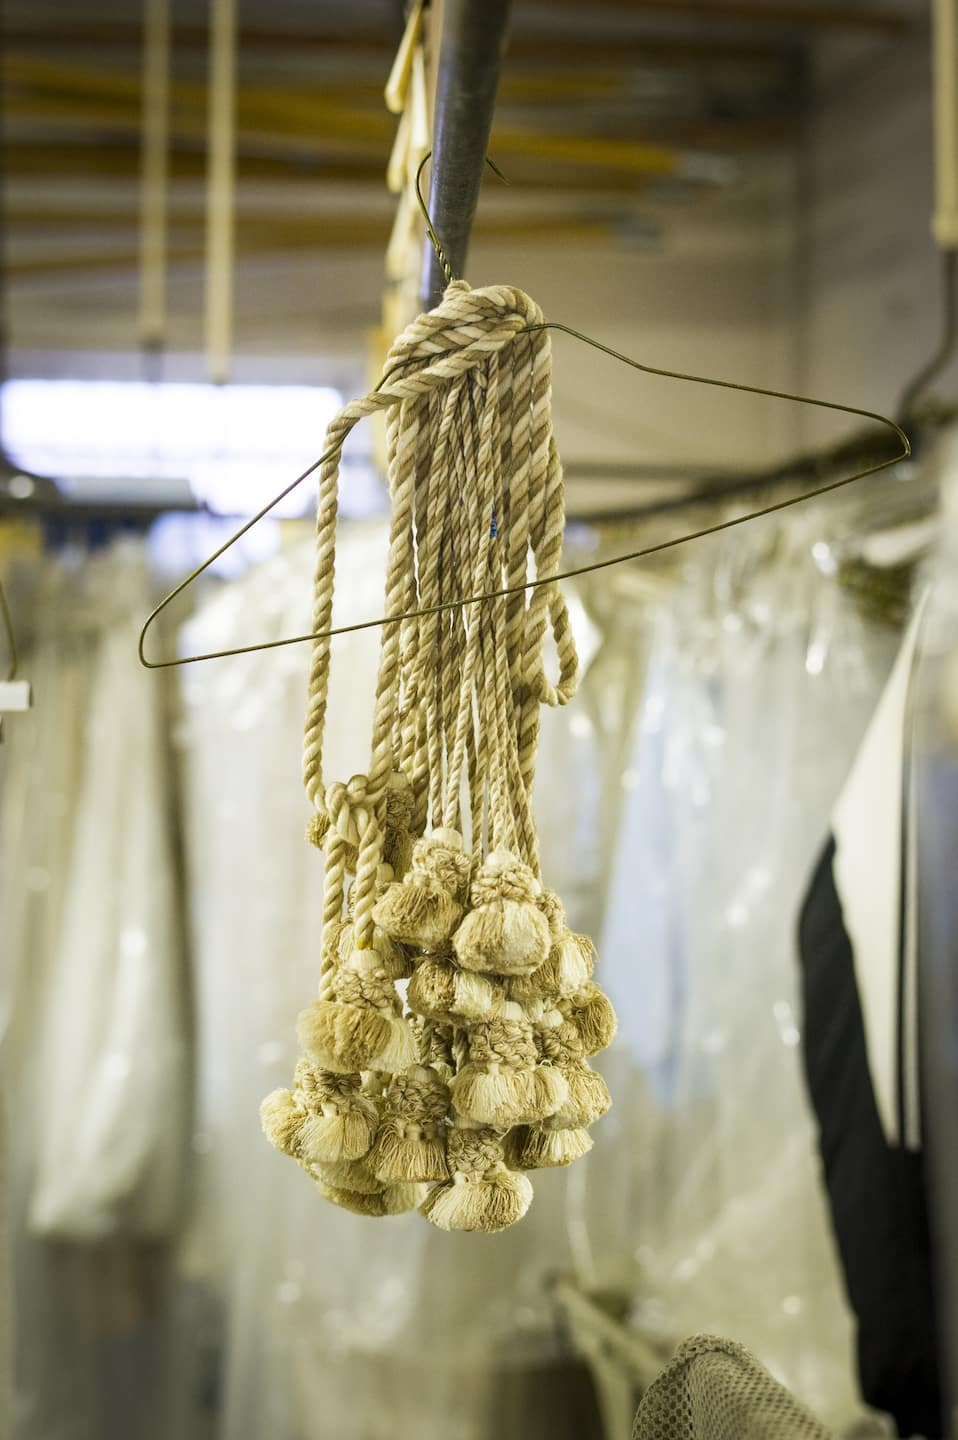 Tassels hanging from a hanger